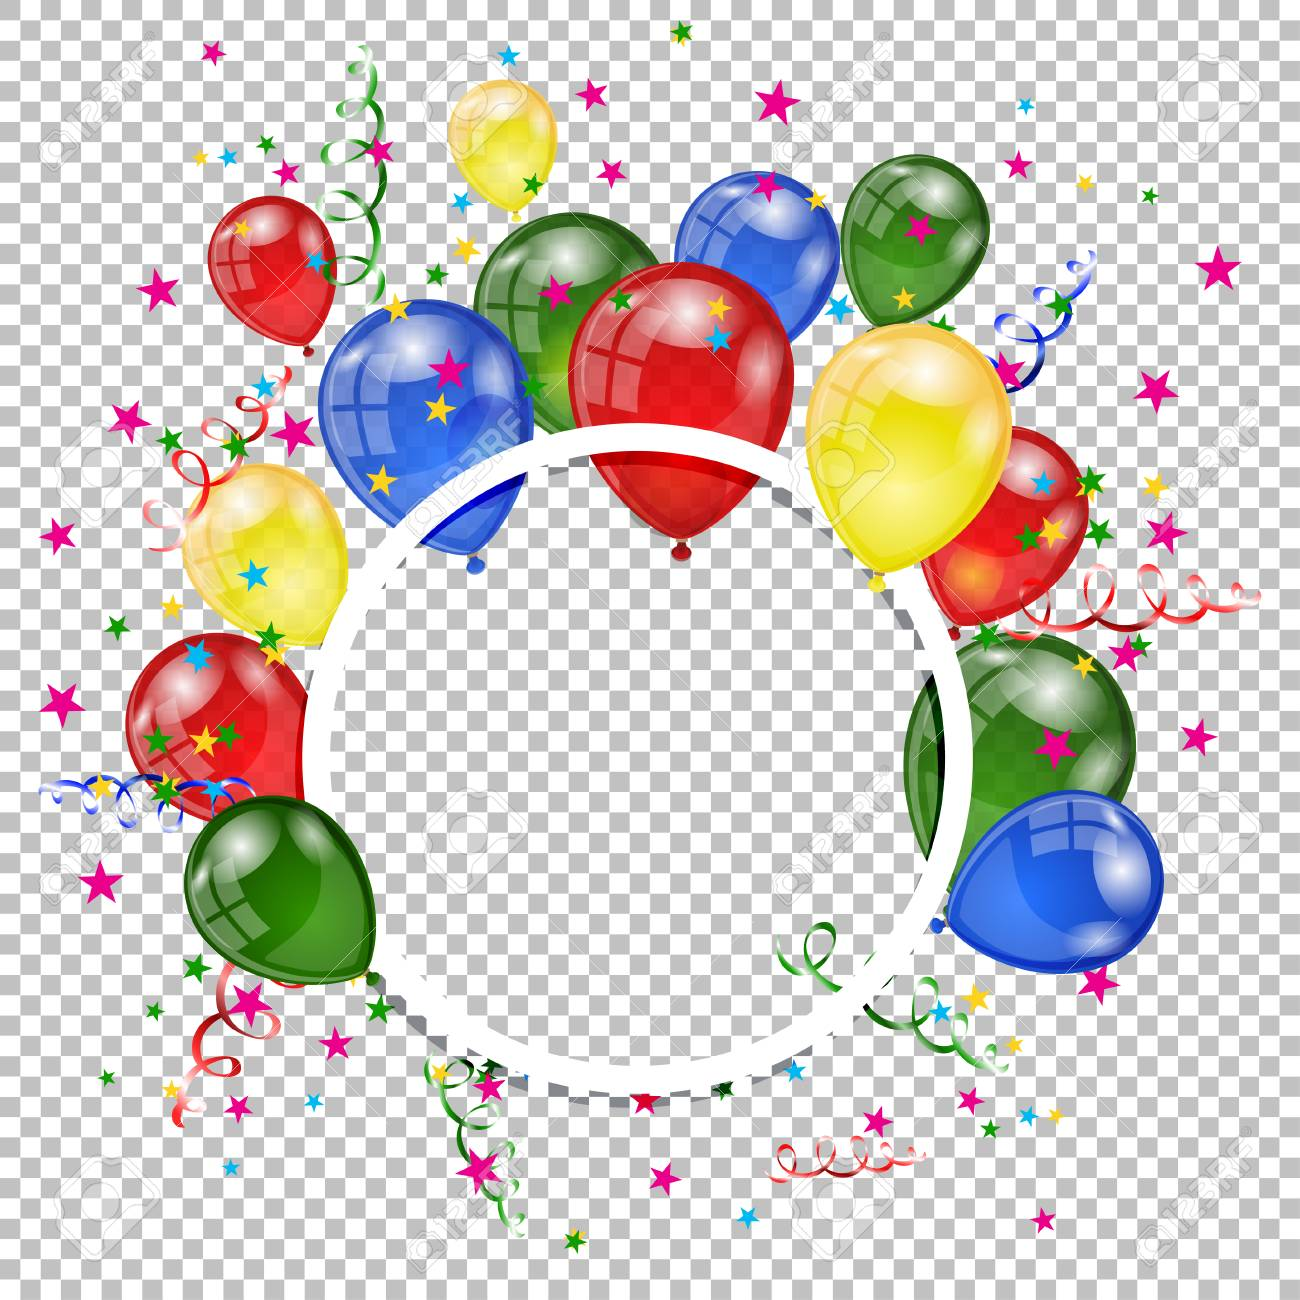 Balloons On A Transparent Background Happy Birthday Greeting Card Vector Illustration Stock